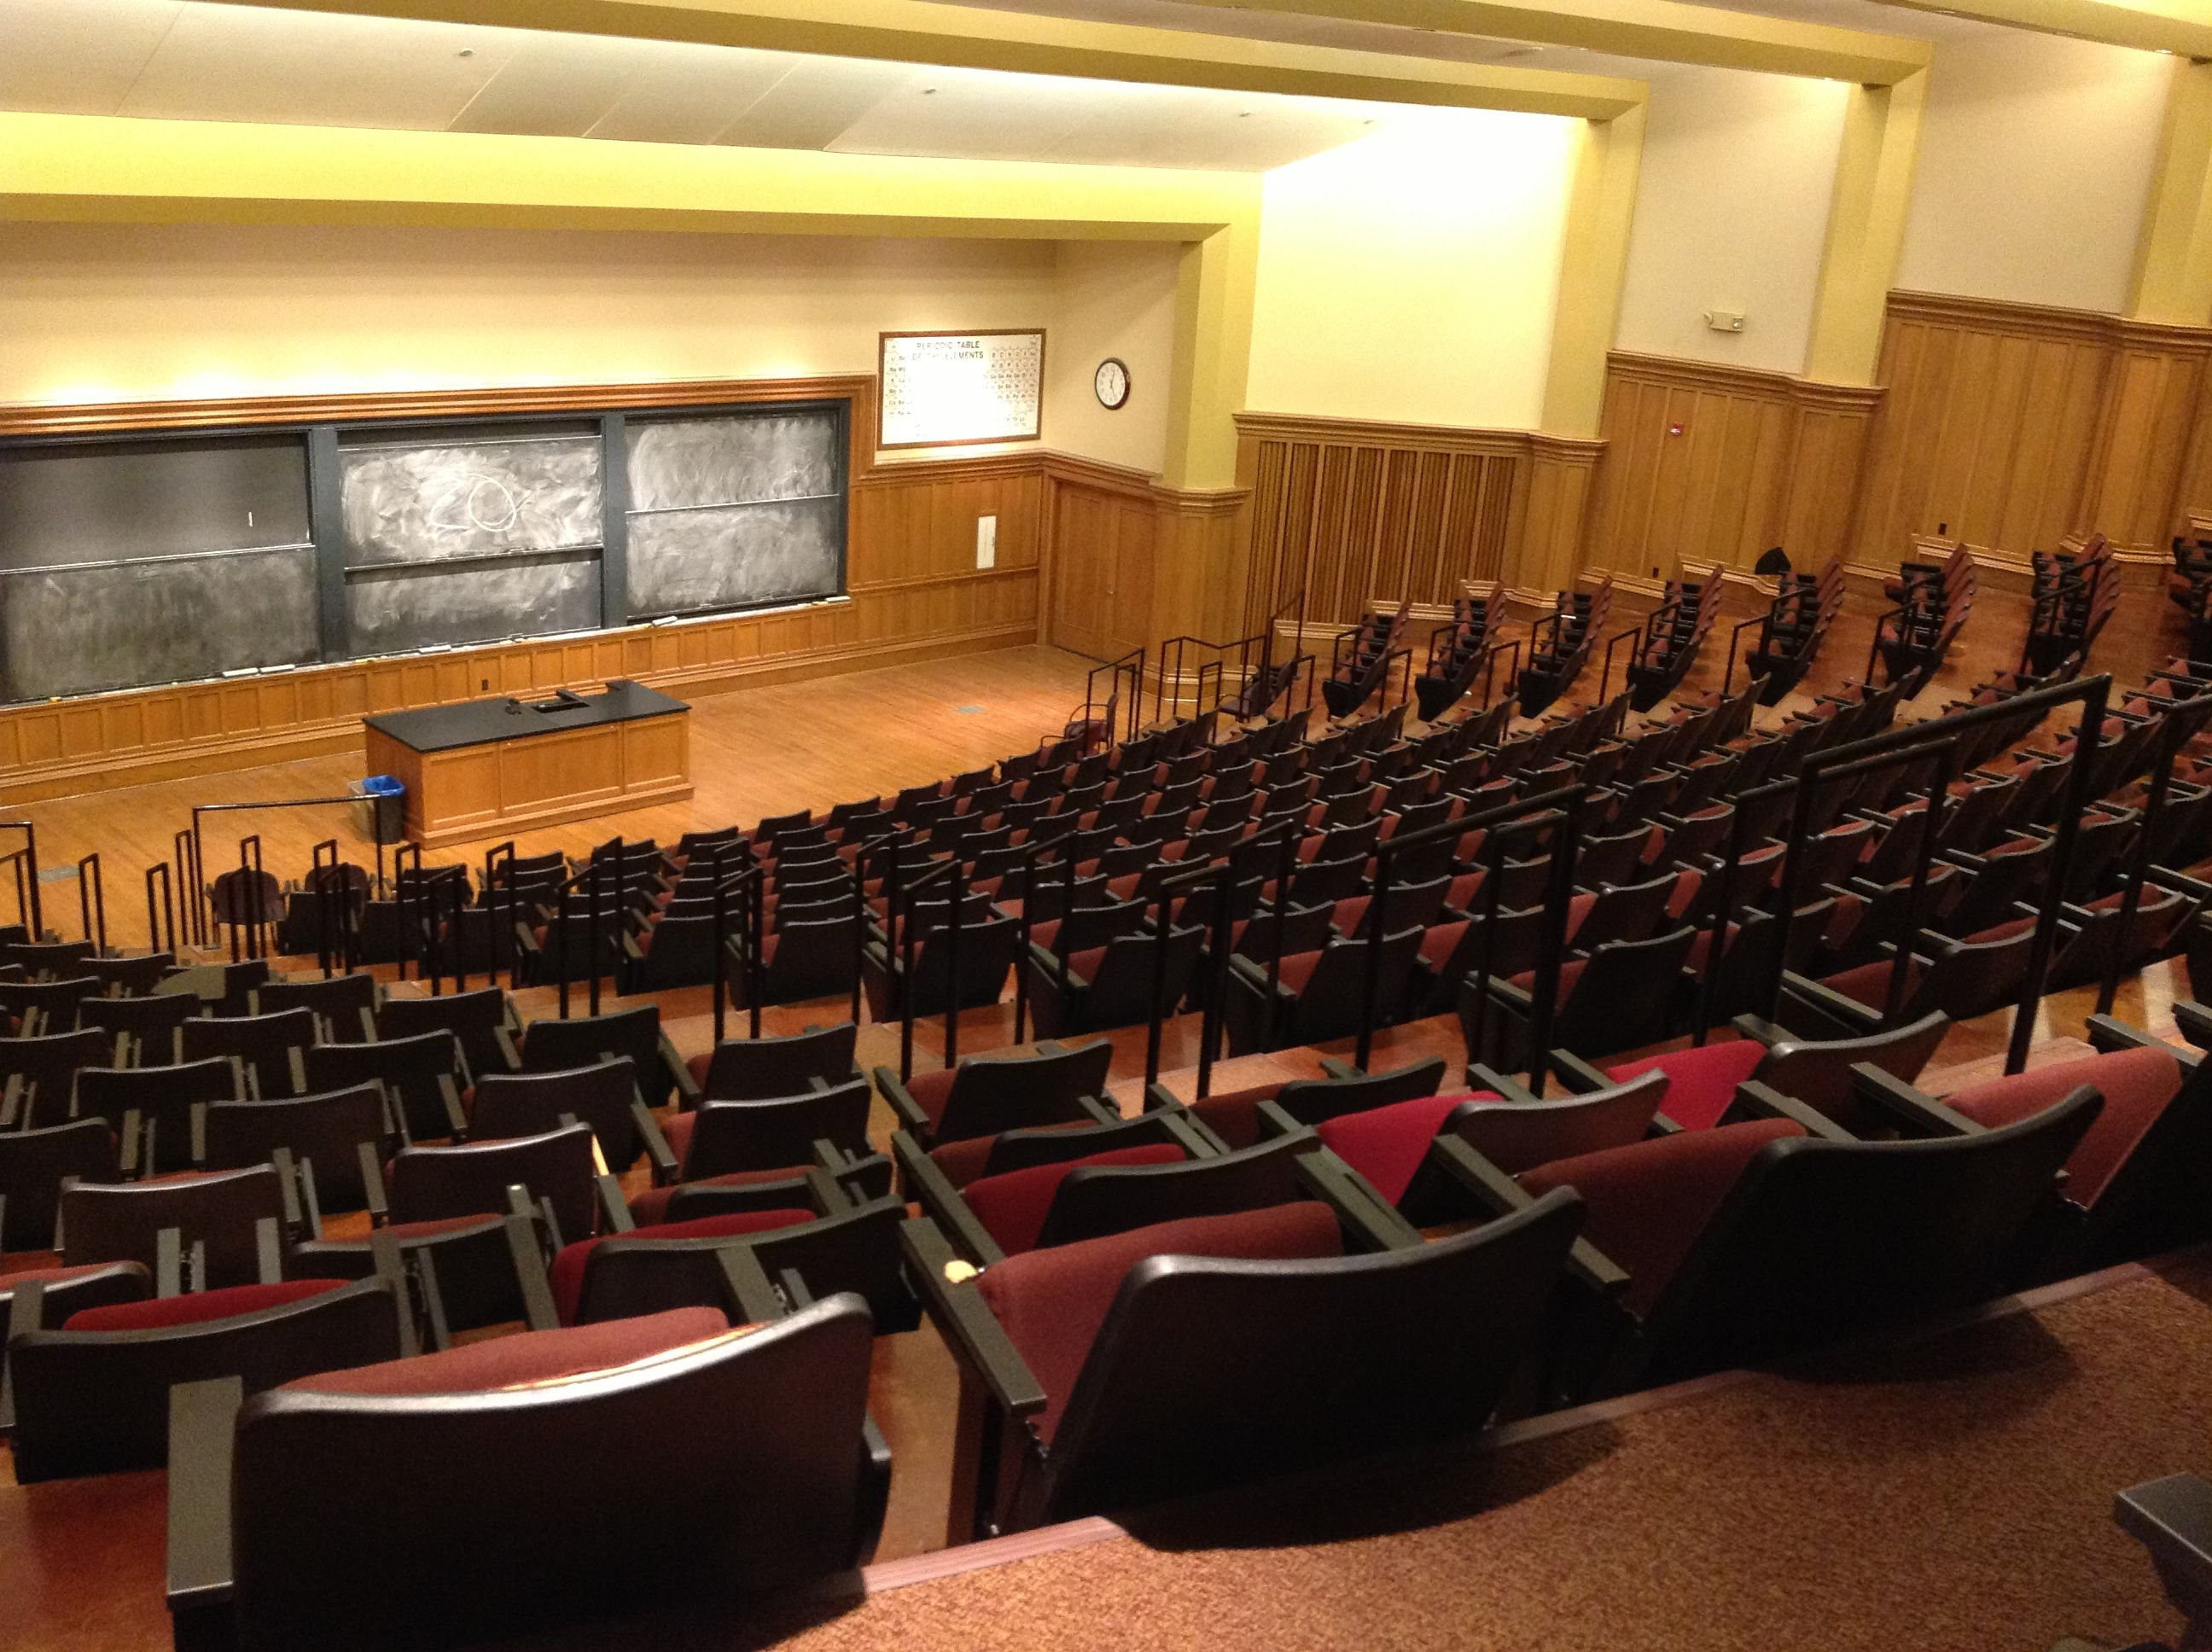 lethargy in large lecture halls Theater style seating in large lecture halls, poor acoustics, a lack of  a good technique for countering the effects of large lecture lethargy involves having.